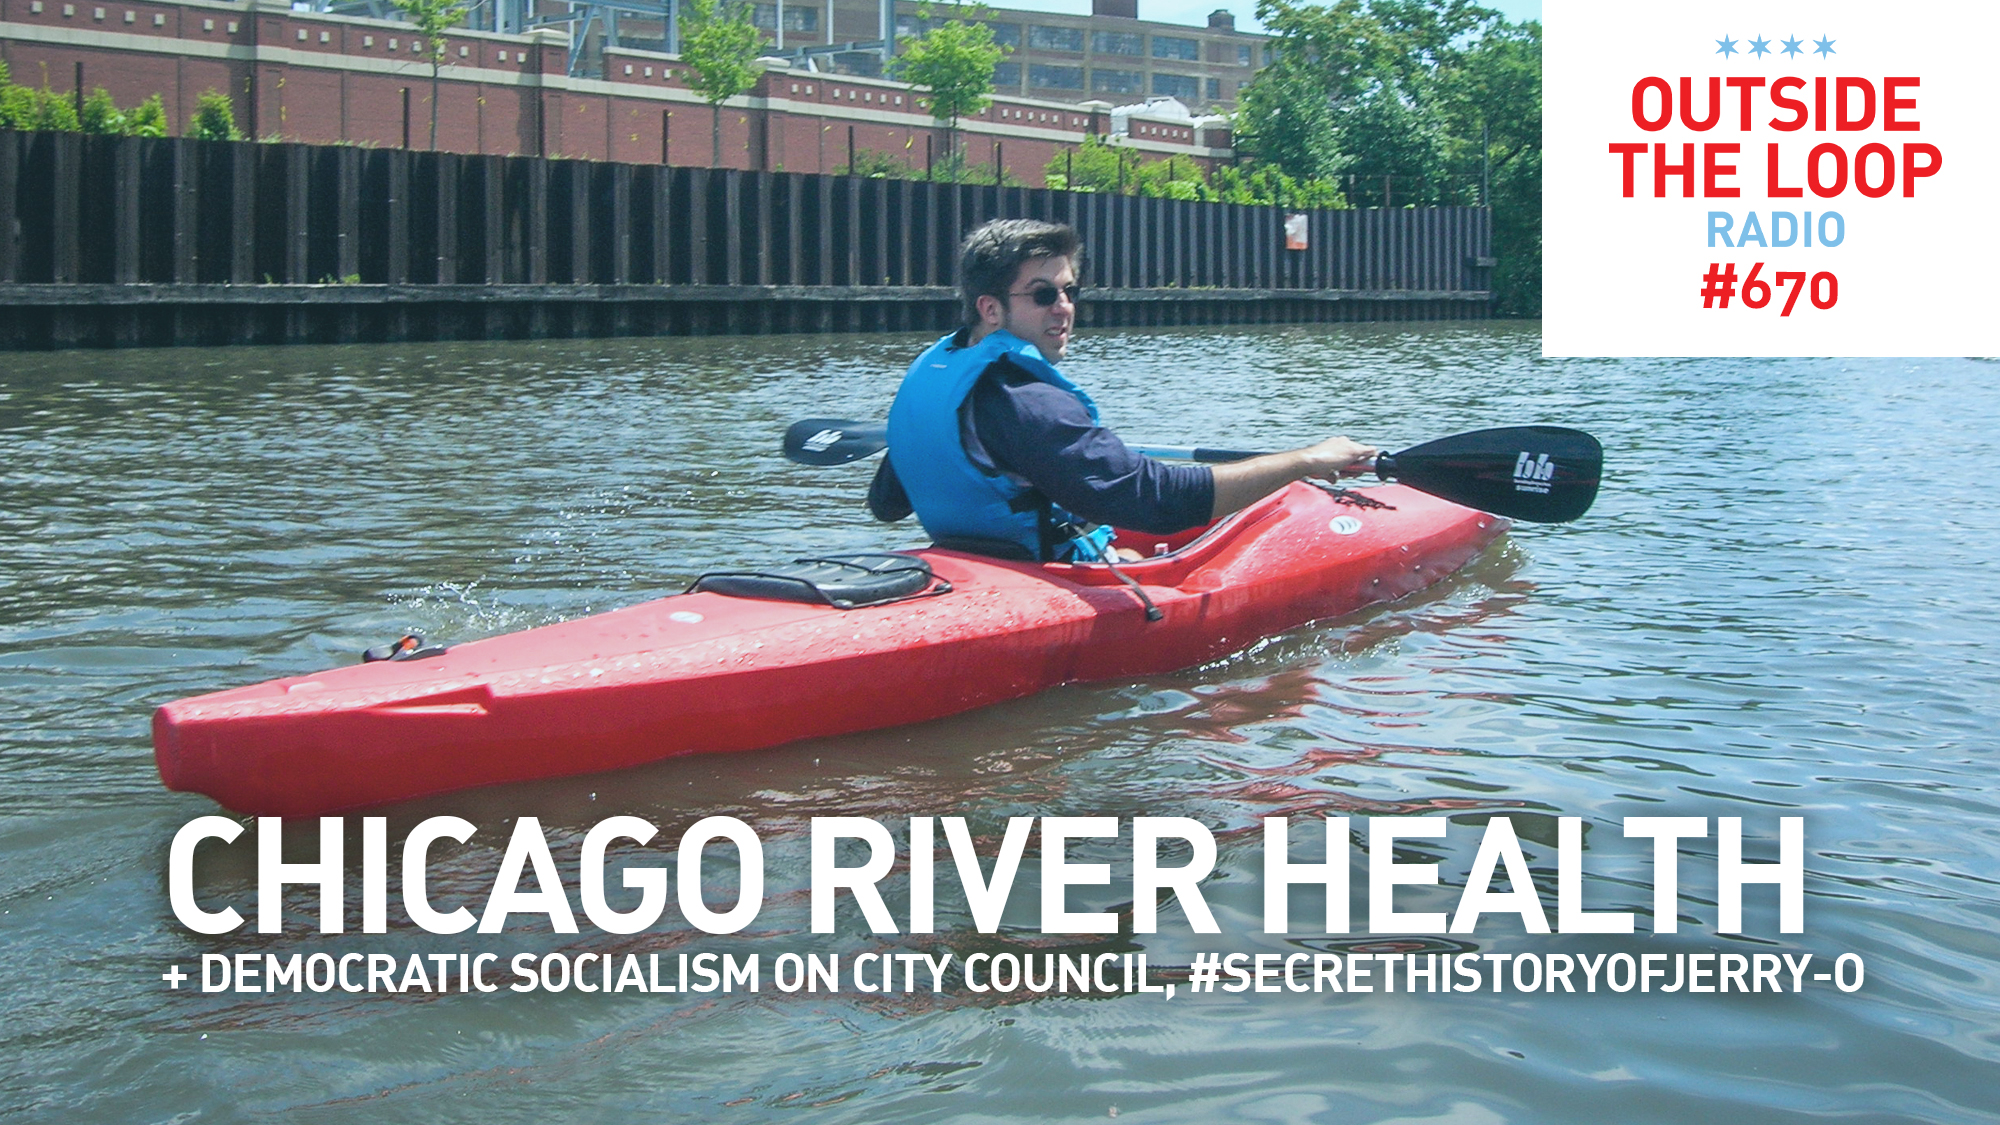 Mike Stephen kayaking on the Chicago River in 2008.